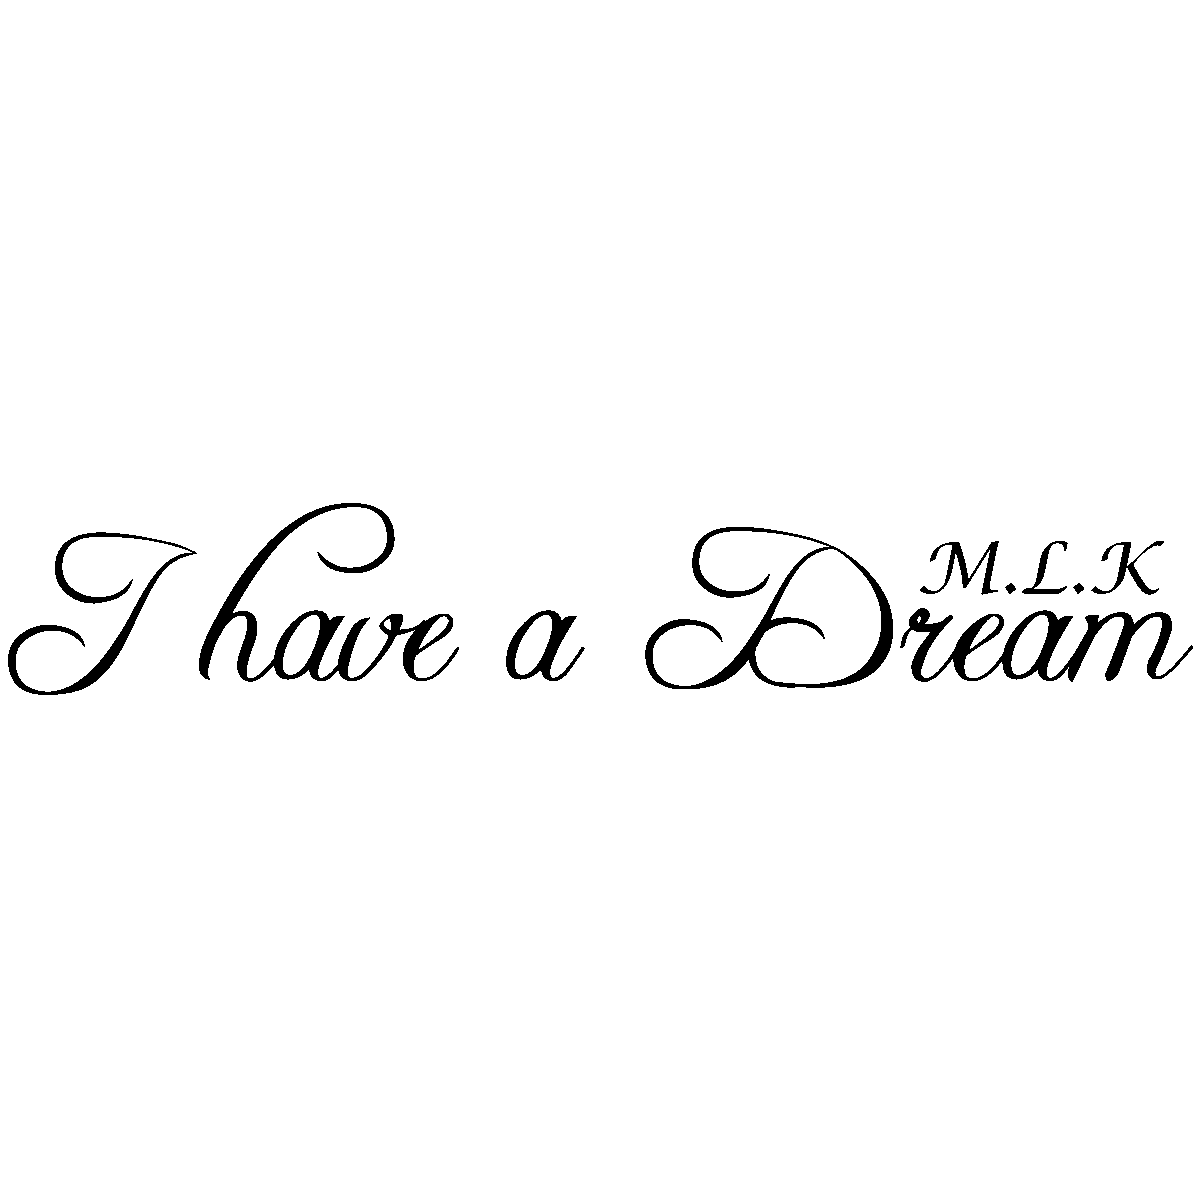 Sticker I Have A Dream Martin Luther King